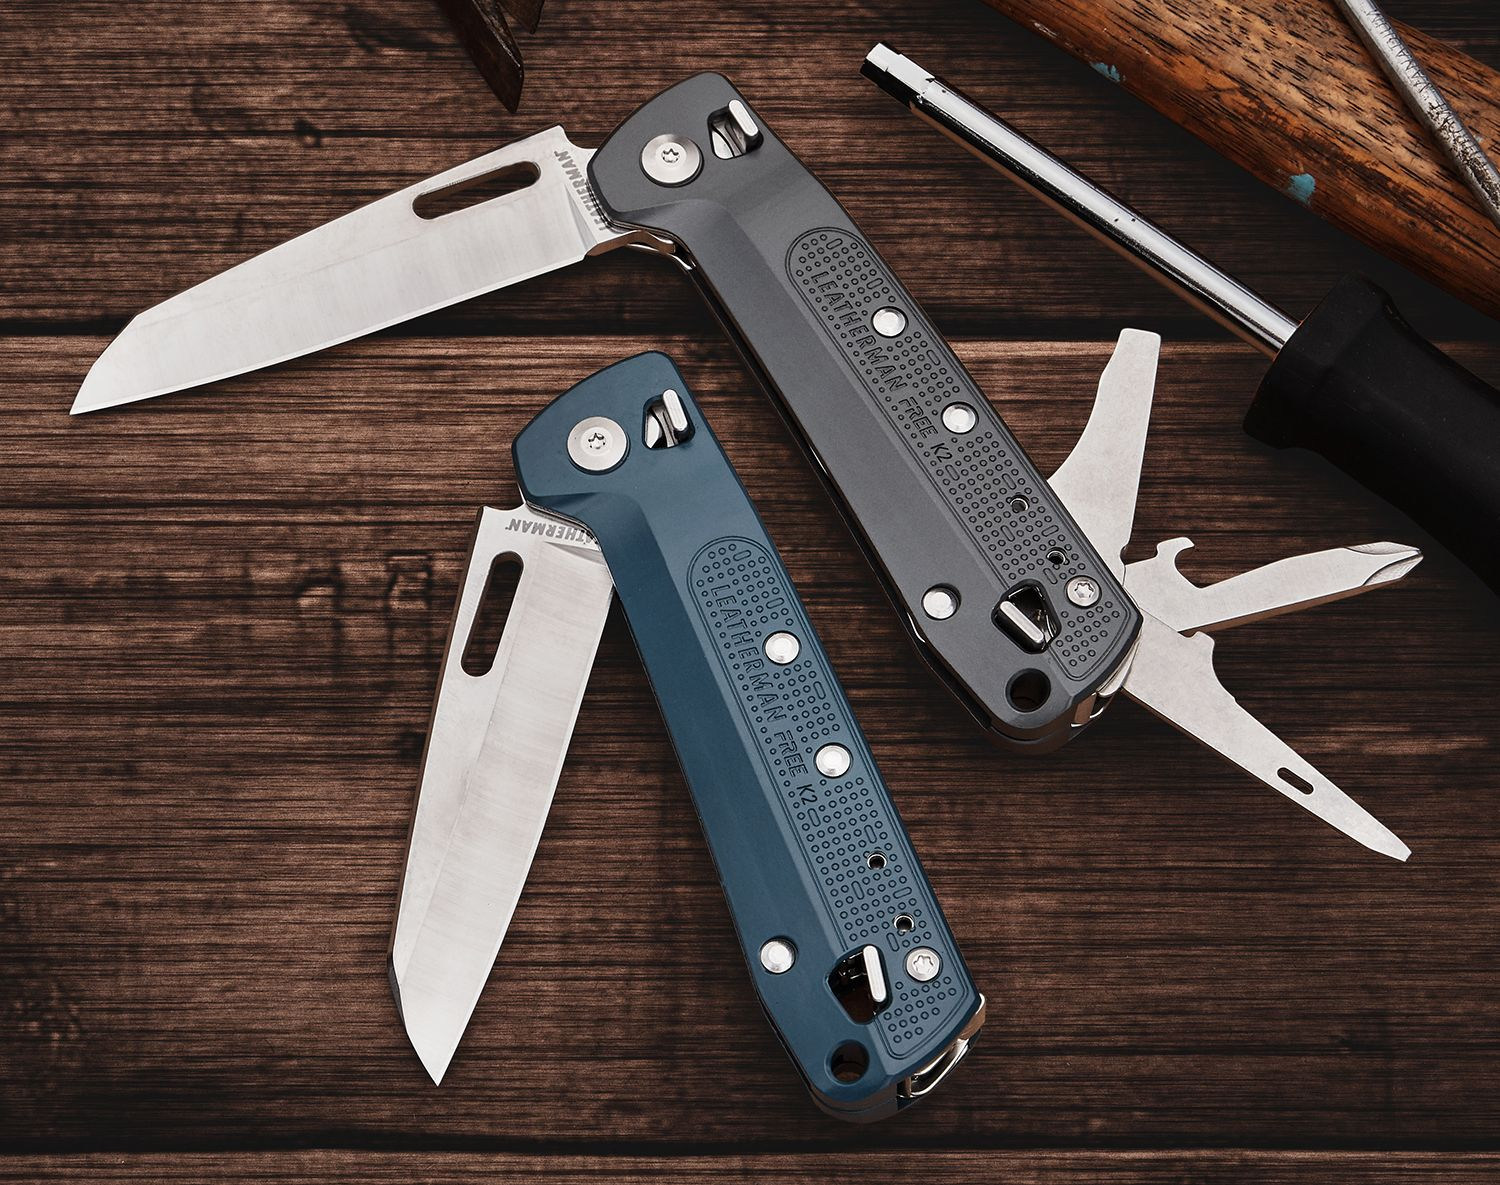 Leatherman FREE K2 tools partially unfolded on table